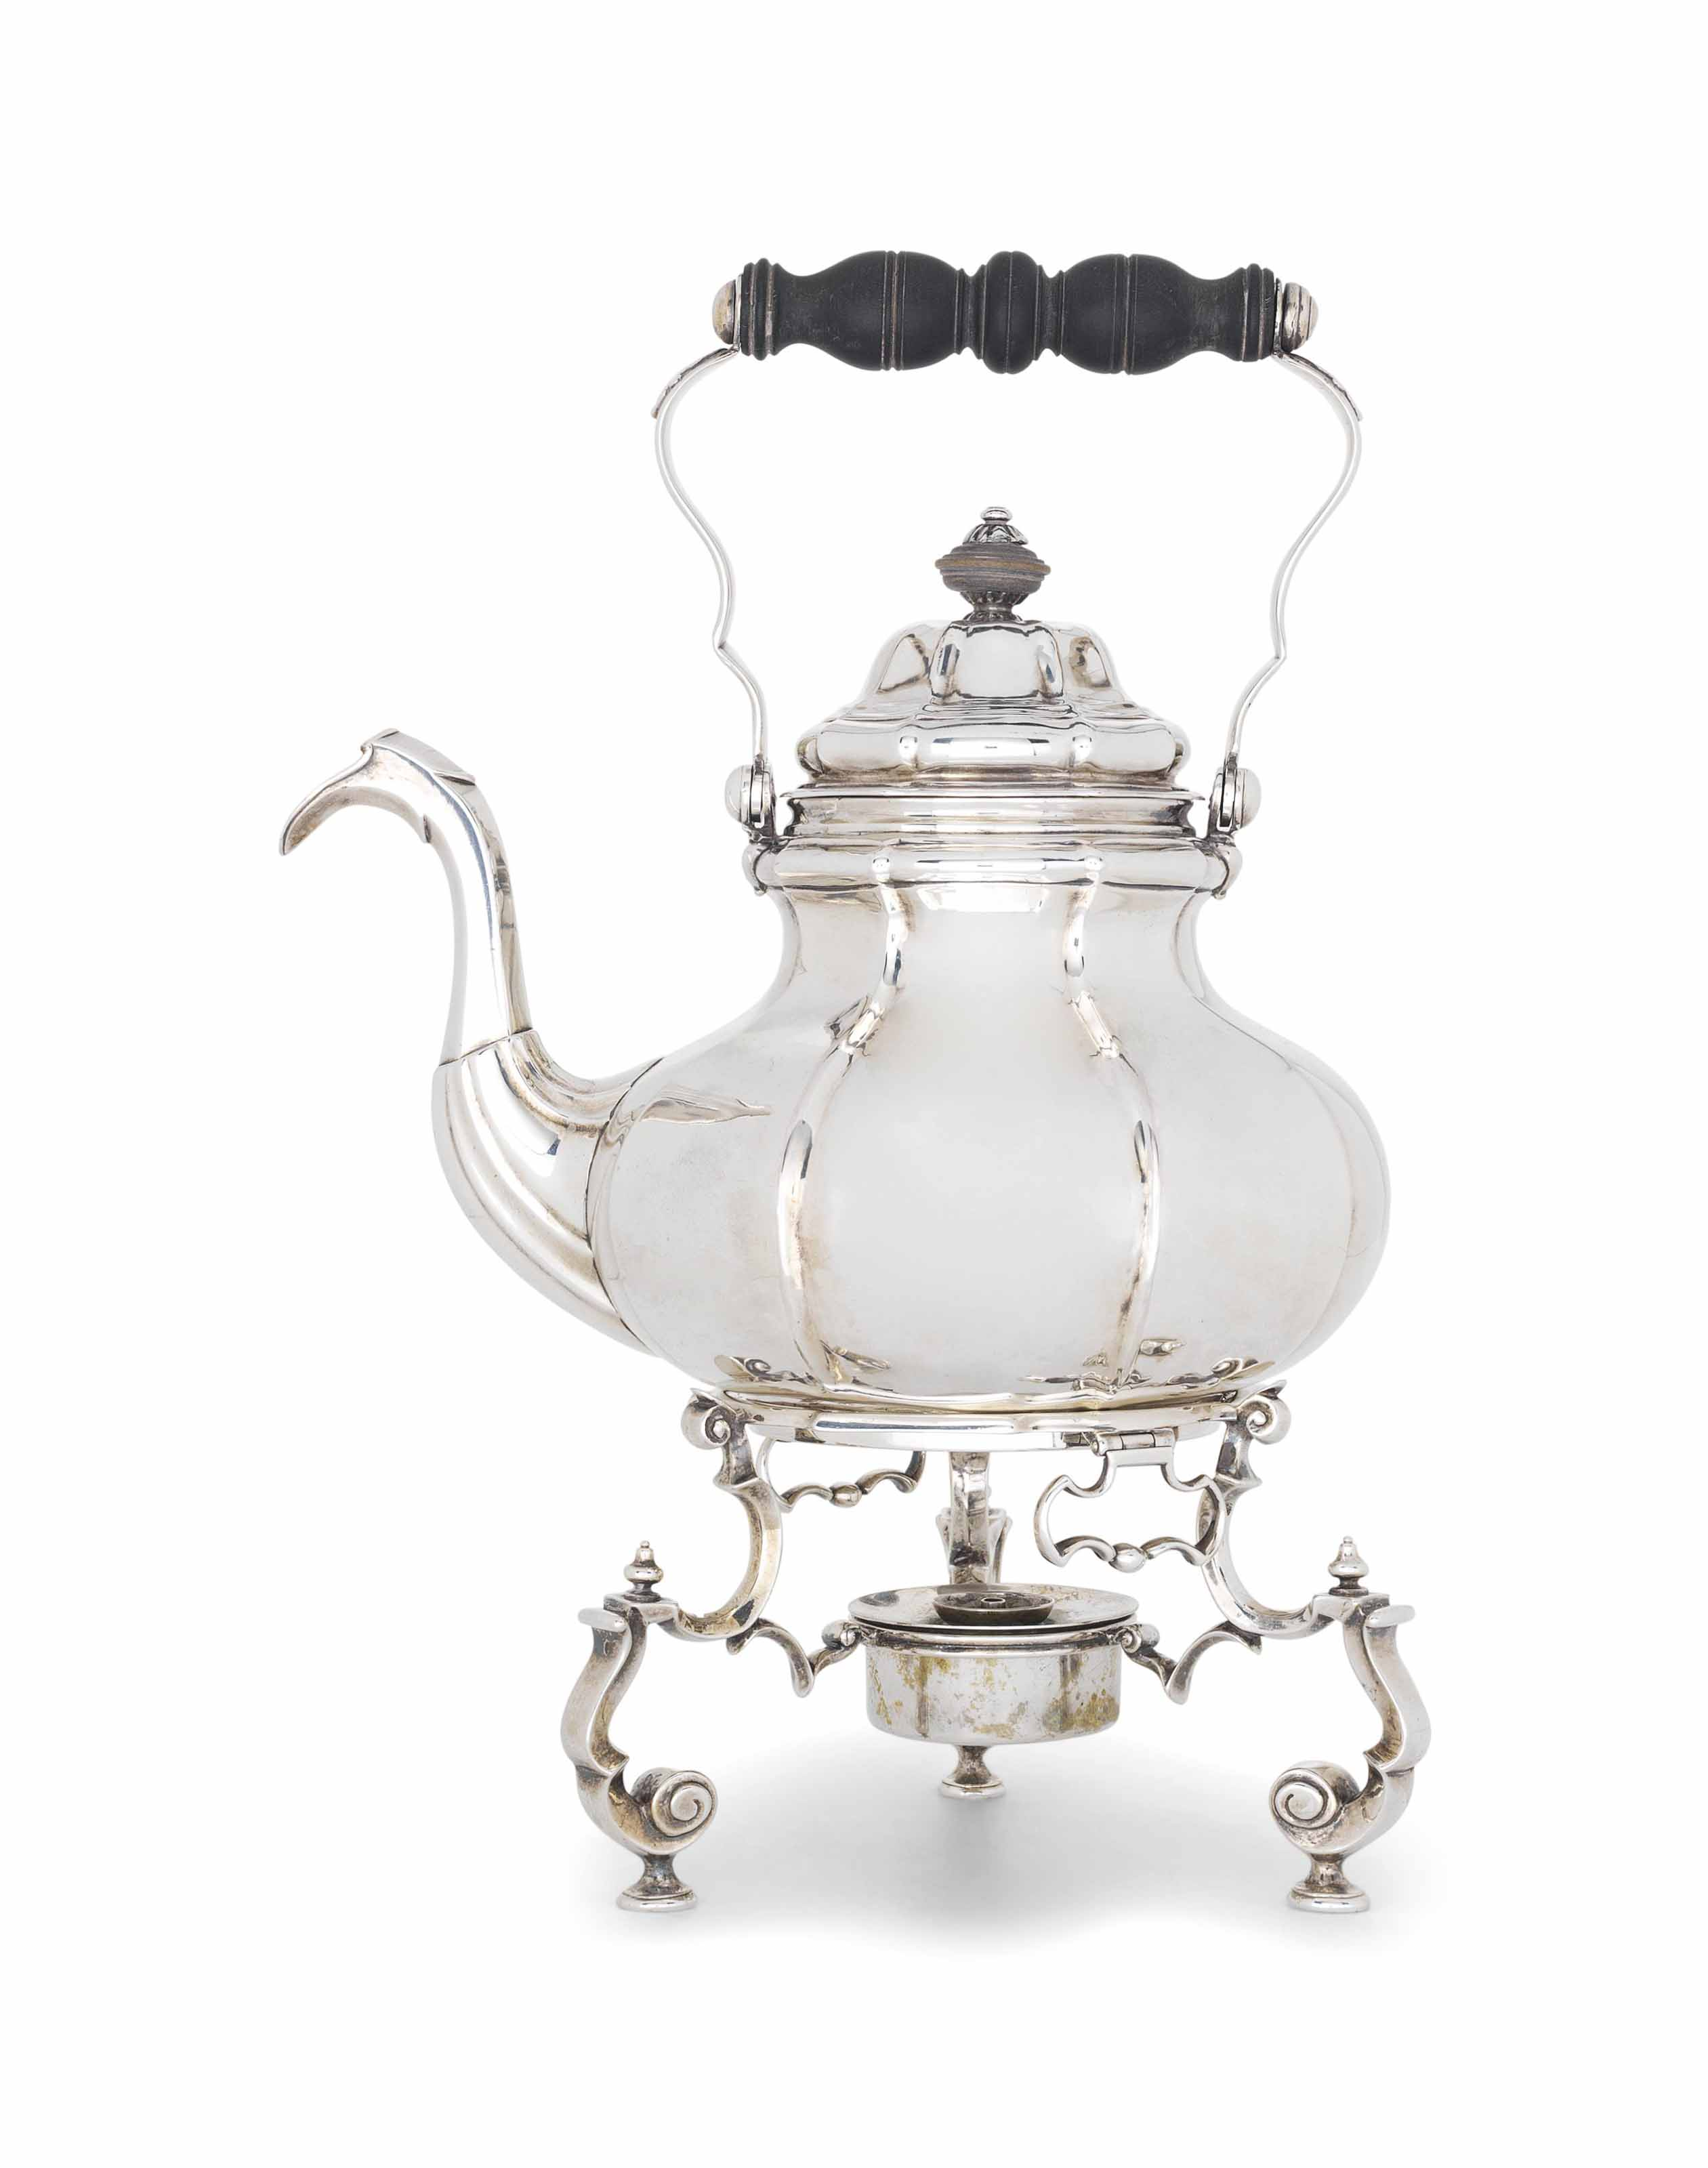 A GERMAN SILVER KETTLE AND STAND